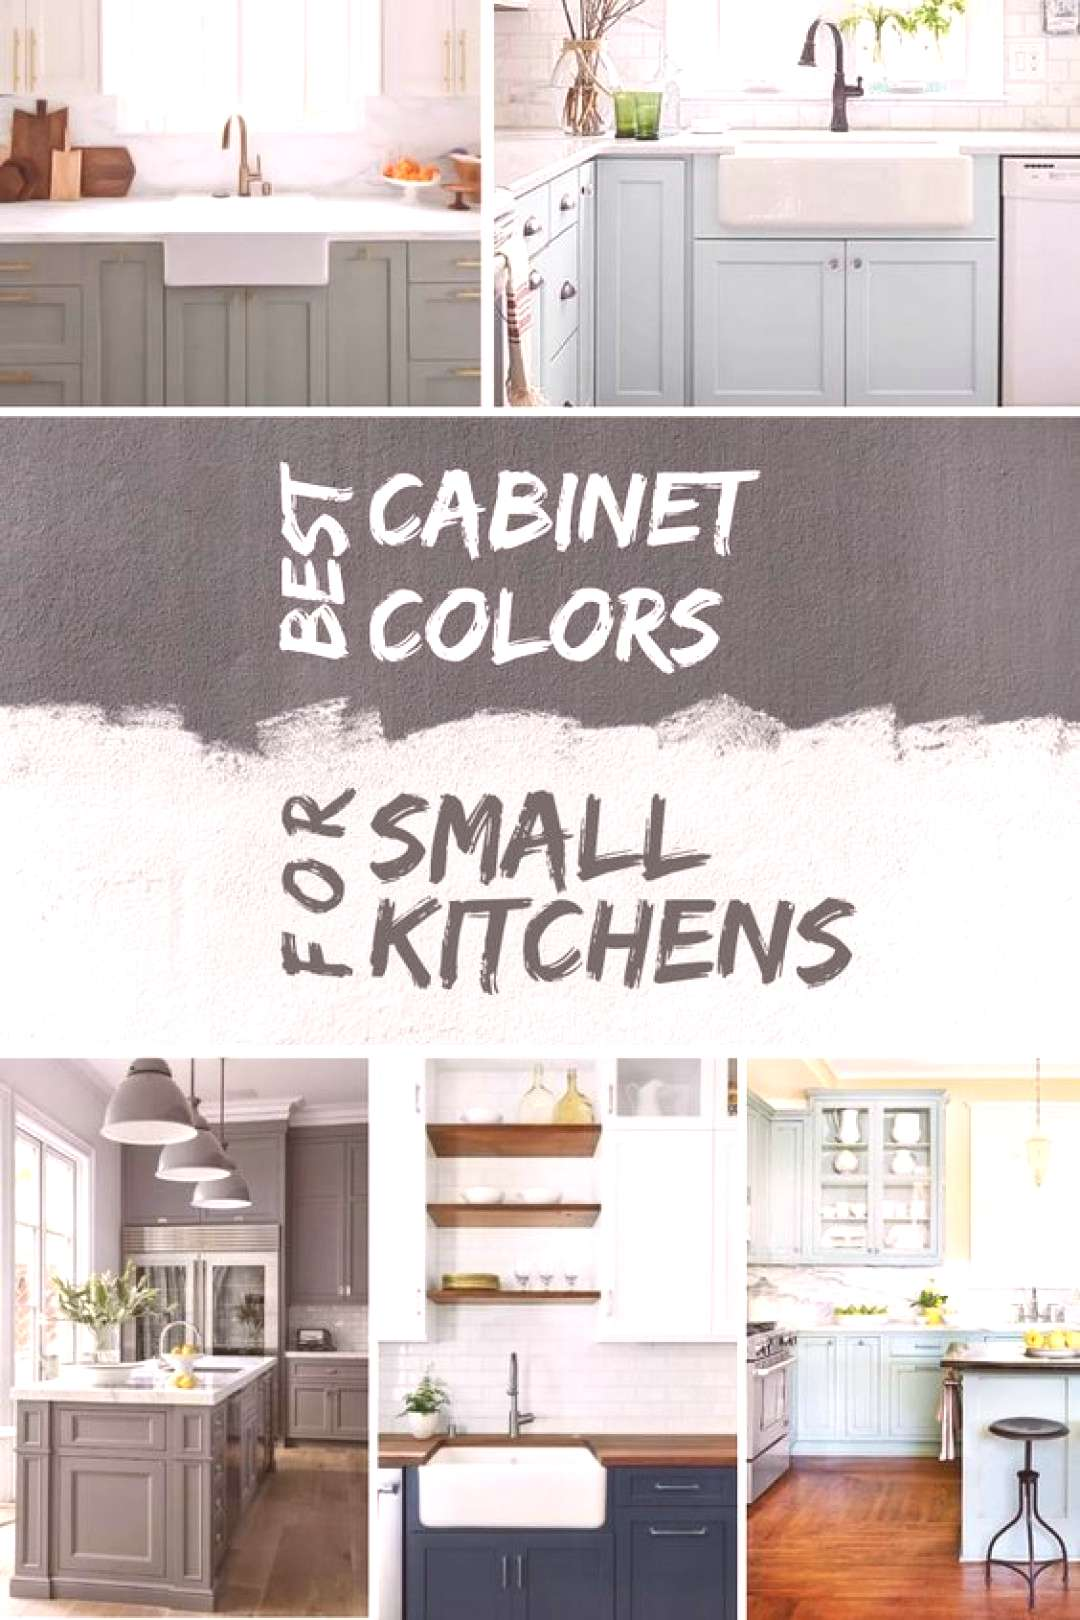 What are the best cabinet colors for a small kitchen? Heres the answer with example